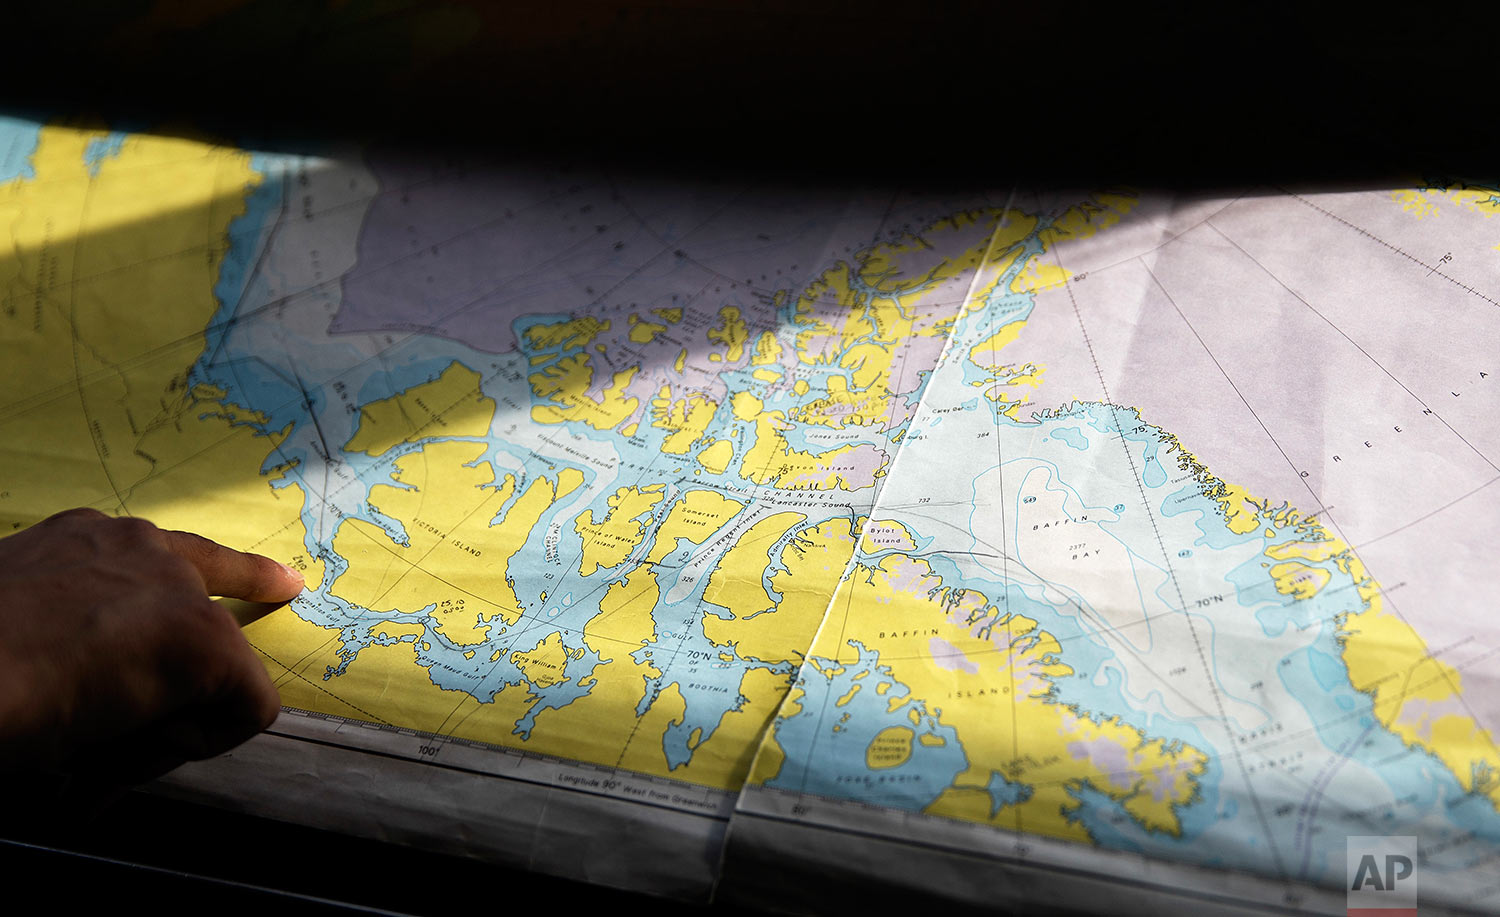 Trainee David Kullualik looks at a map of the Canadian Arctic Archipelago as the Finnish icebreaker MSV Nordica traverses the Northwest Passage, Monday, July 24, 2017. Researchers on the trip sought to observe the changes taking place in the region first hand, to gain a clearer picture of the effects of global warming already seen from space. Even the dates of the journey were a clue: The ship departed Vancouver in early July and arrived in Nuuk, Greenland on July 29th, the earliest transit ever of a region that isn't usually navigable until later in the year. (AP Photo/David Goldman)